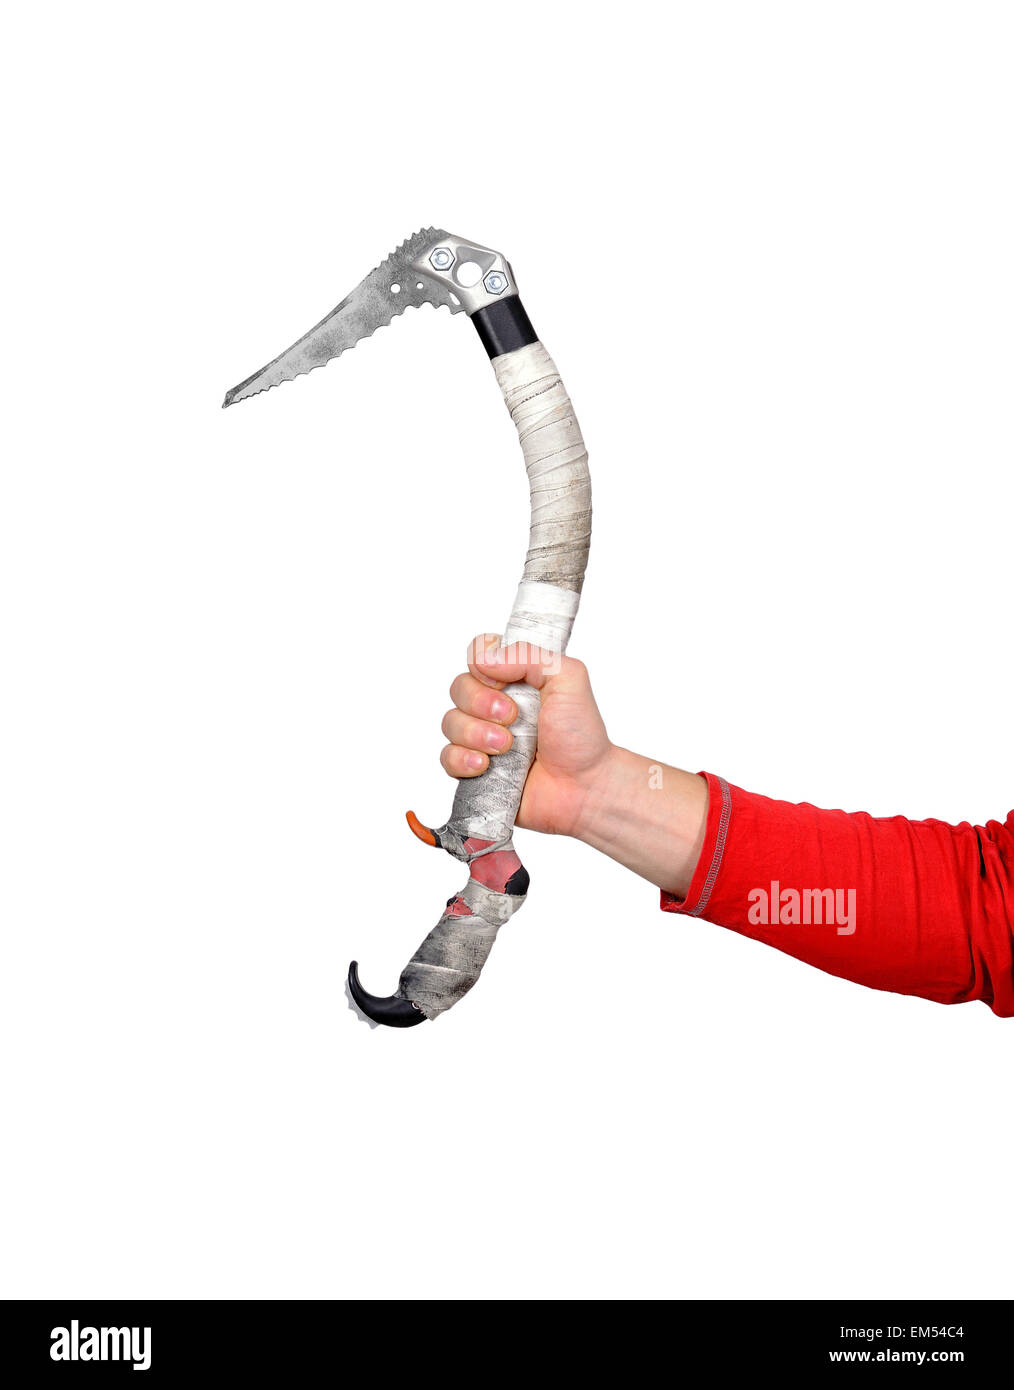 old ice ax in hand on white background - Stock Image